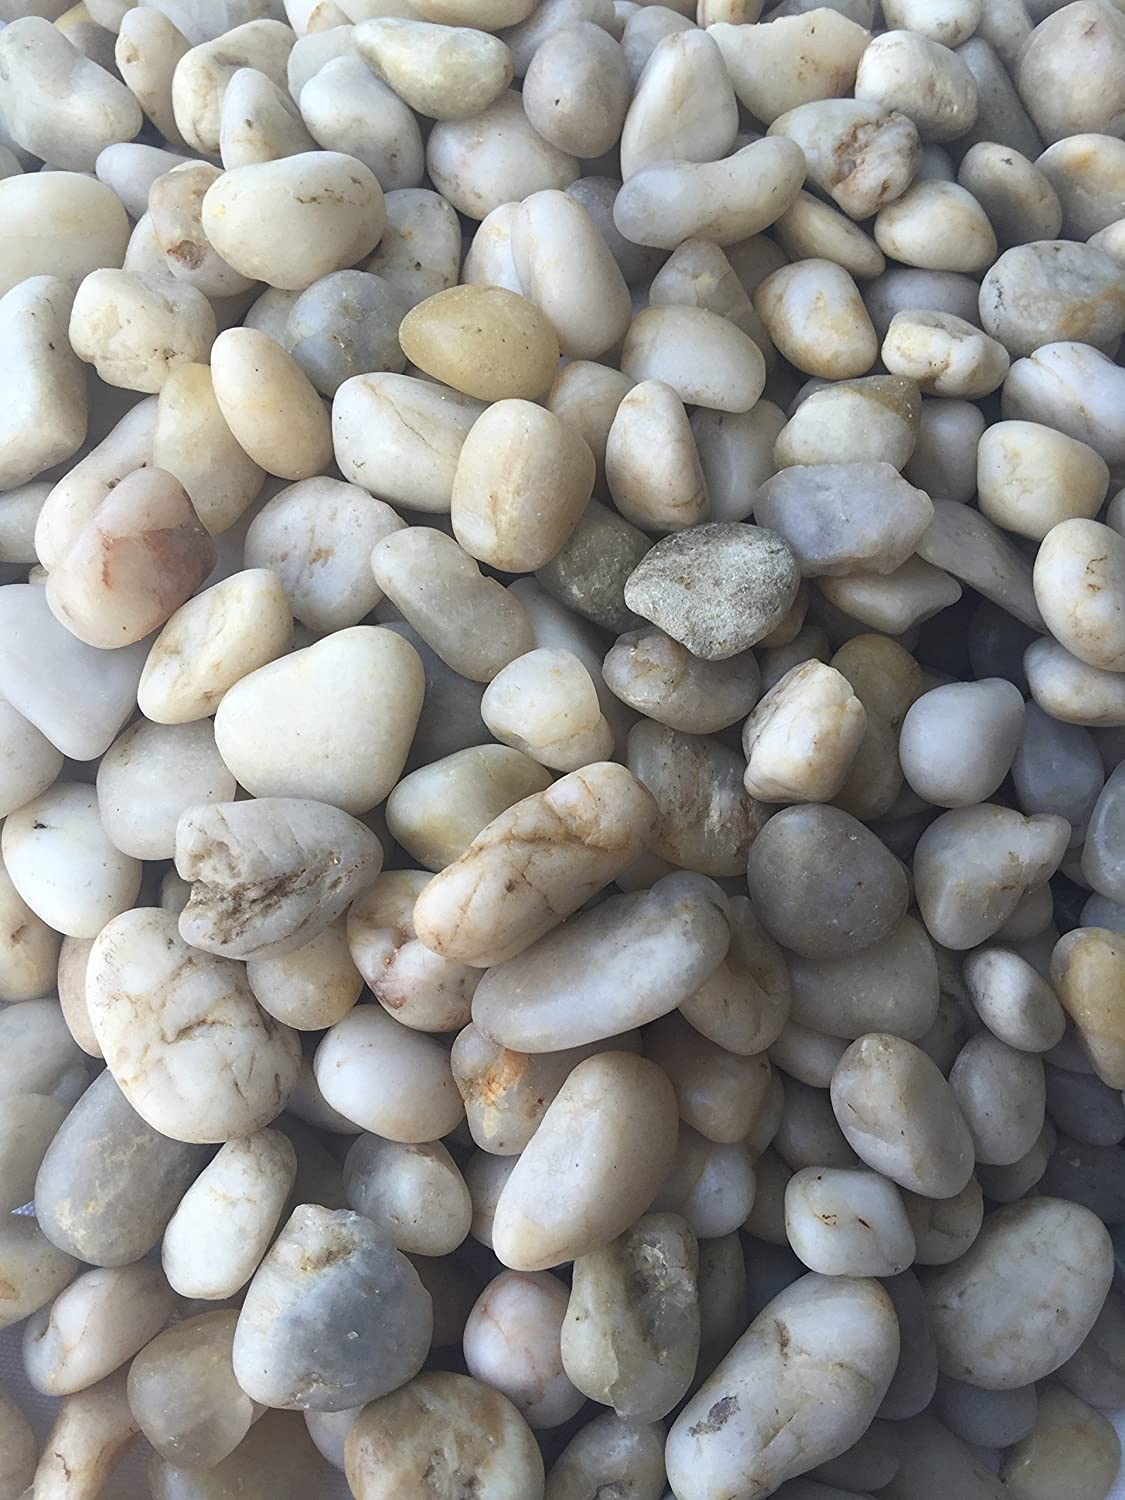 Amazon.com : Decorative Garden Pebbles/river Rocks Used For Outdoor  Landscaping Or Indoor Projects (fish Tanks And Potted Plants) 30 Lbs  (small, ...